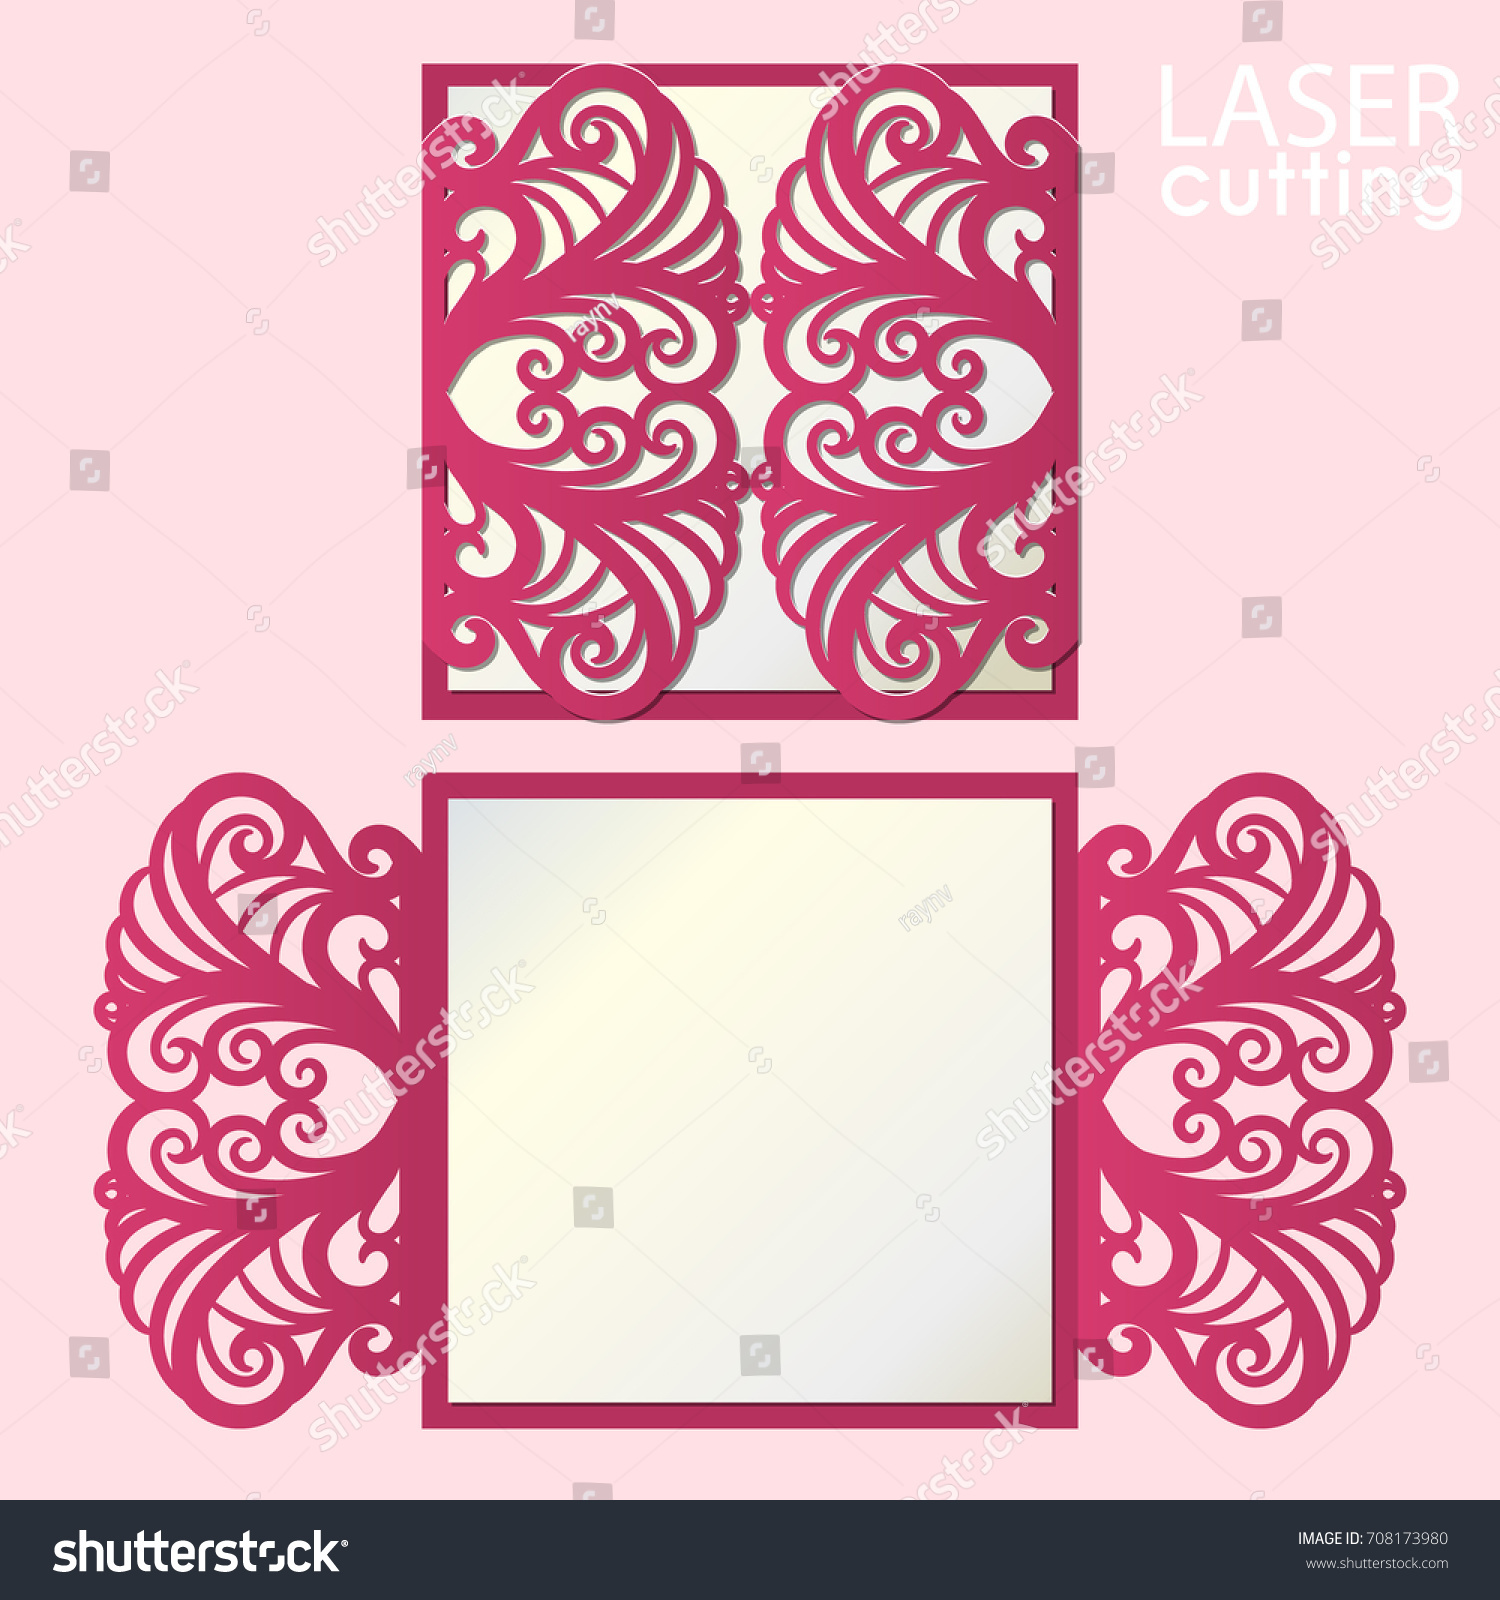 Laser Cut Wedding Invitation Card Template Vector Cutout Paper Gate Fold For Cutting: Cut Out Wedding Invitation Card Templates At Websimilar.org